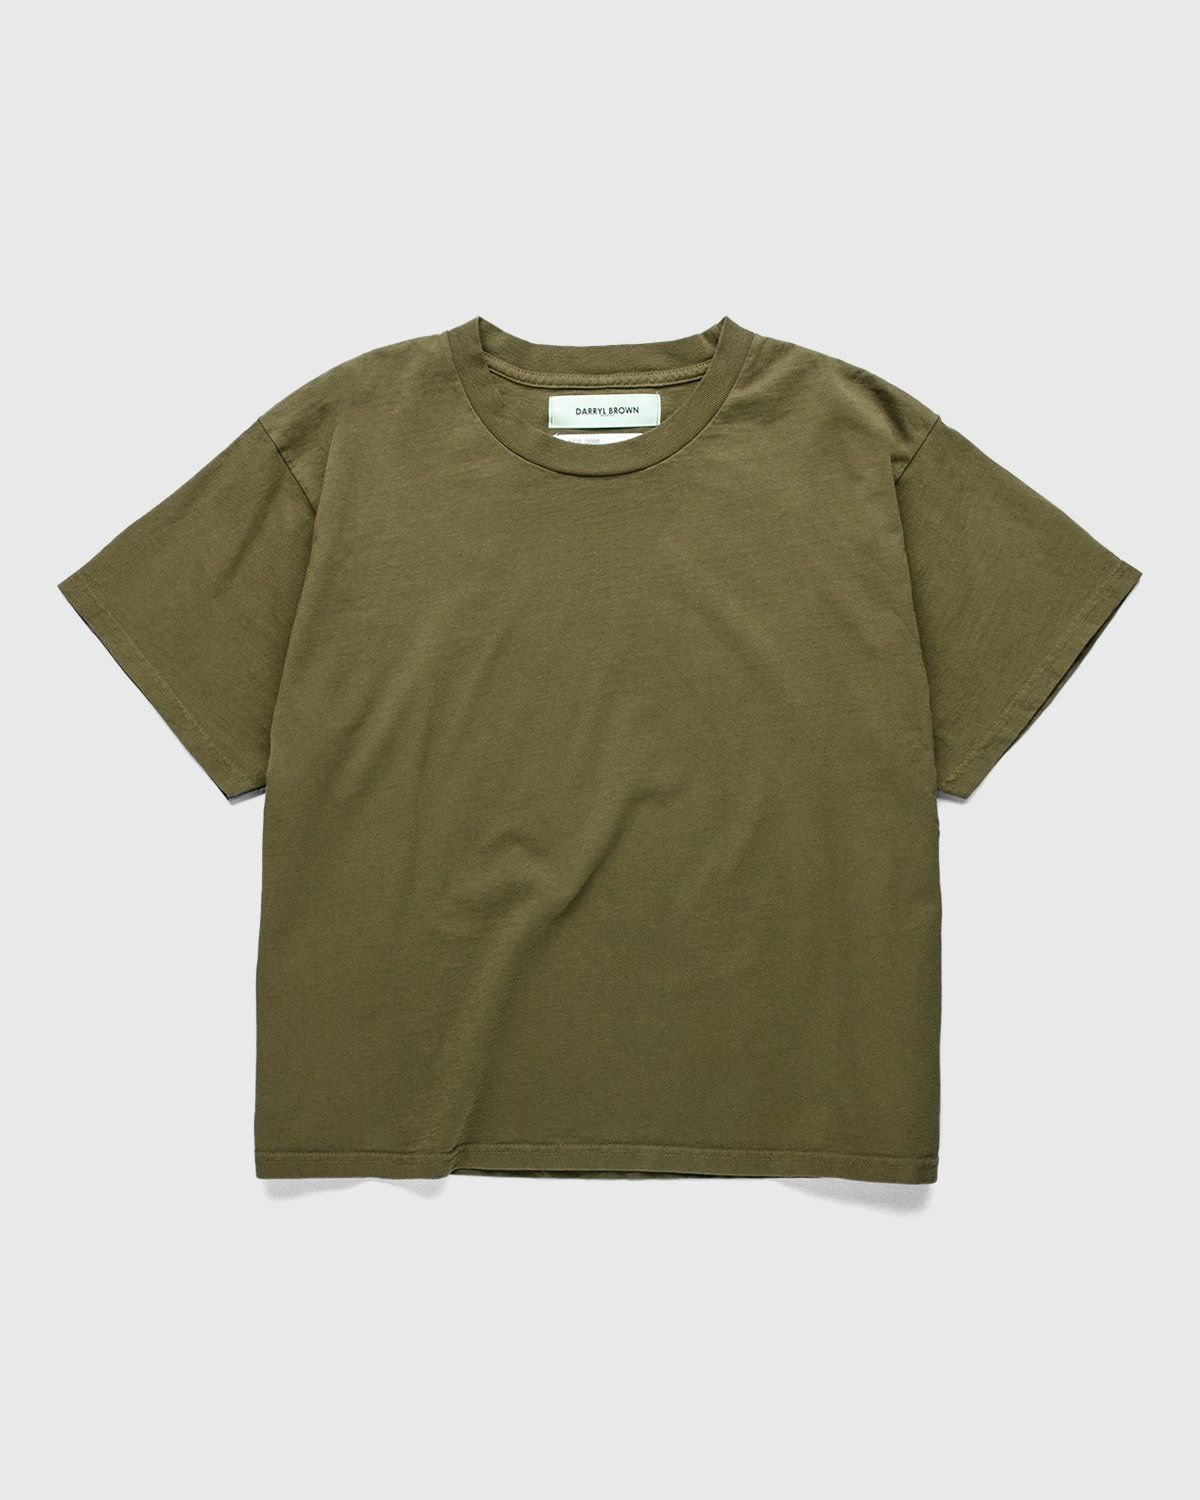 Darryl Brown — T-Shirt Military Olive - Image 1